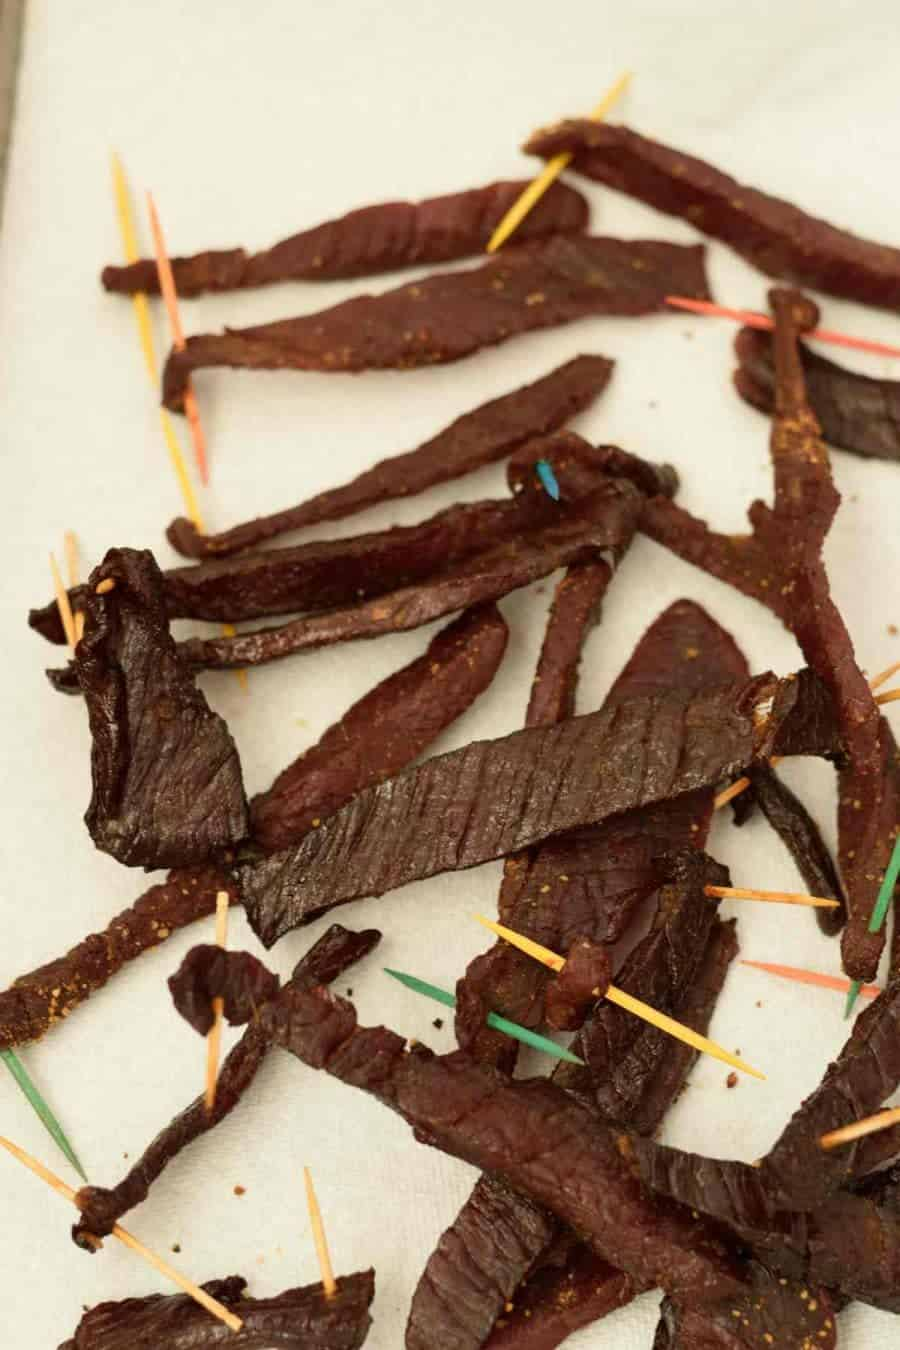 Tennessee Smoked Beef Jerky. What are you waiting for? Fire up that smoker and make some Jerky! | Jerkyholic.com